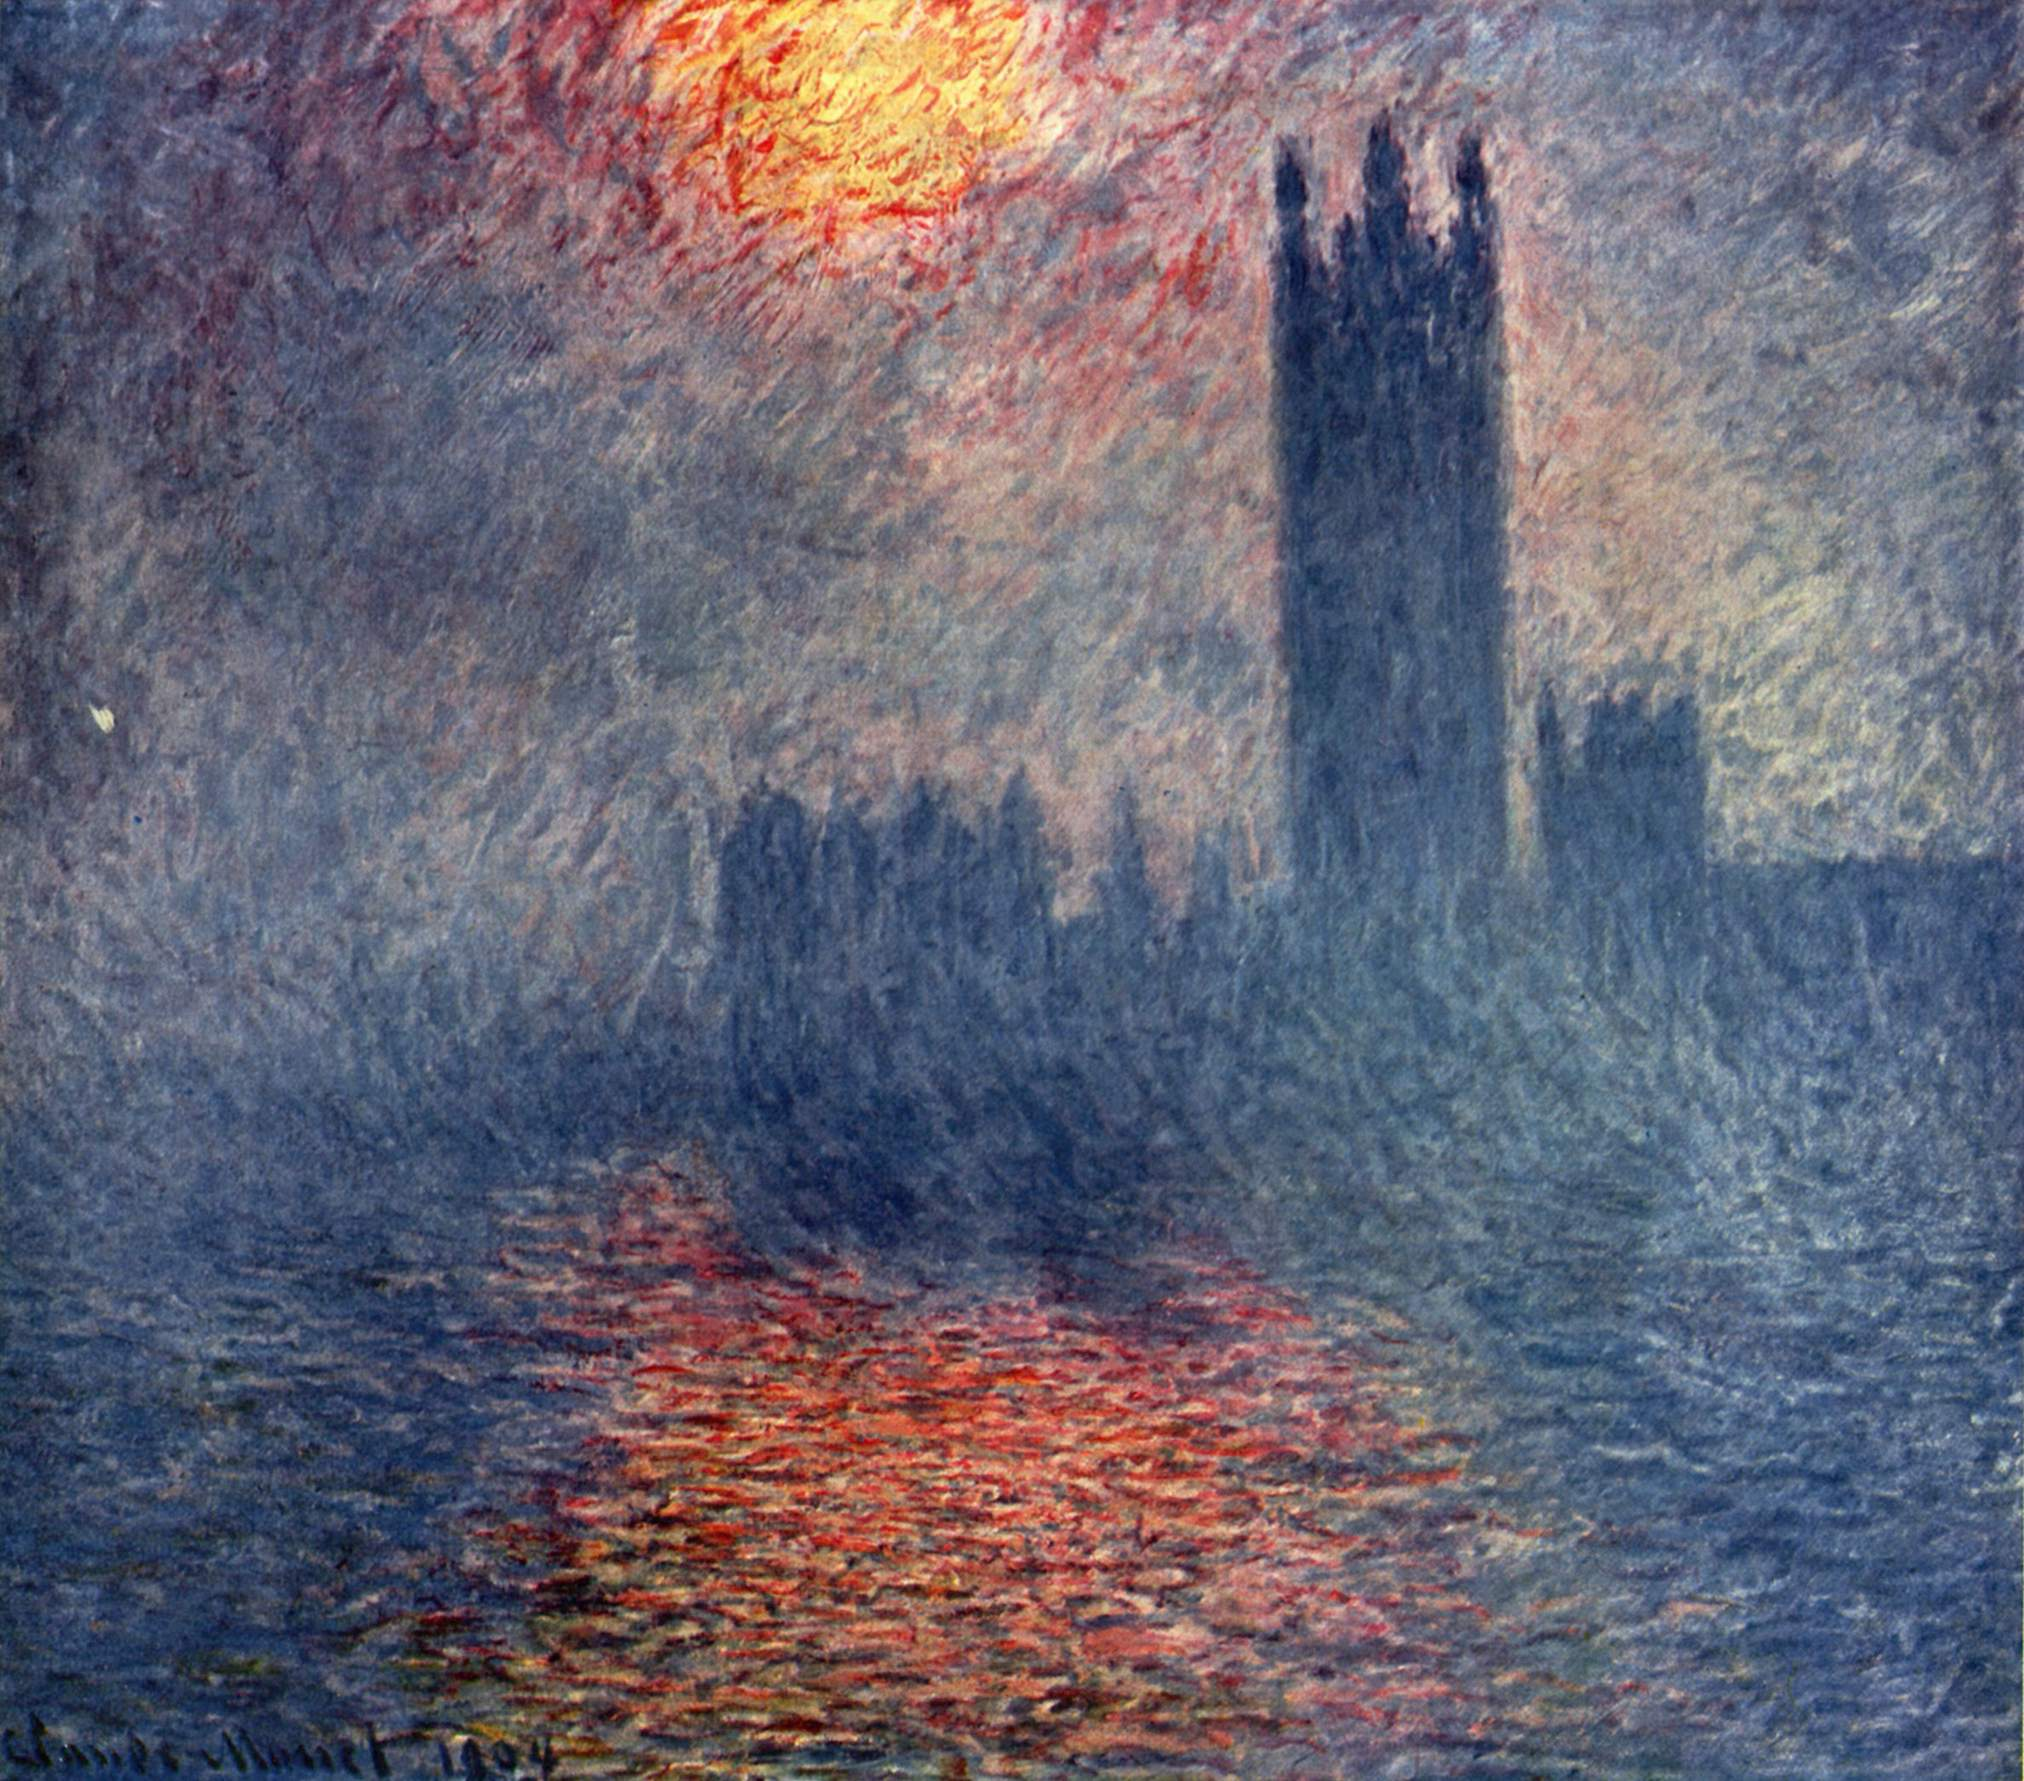 claude monet and impressionism Claude monet's impression, sunrise (musée marmottan monet, paris) exhibited in 1874, gave the impressionist movement its name when the critic louis leroy accused it.